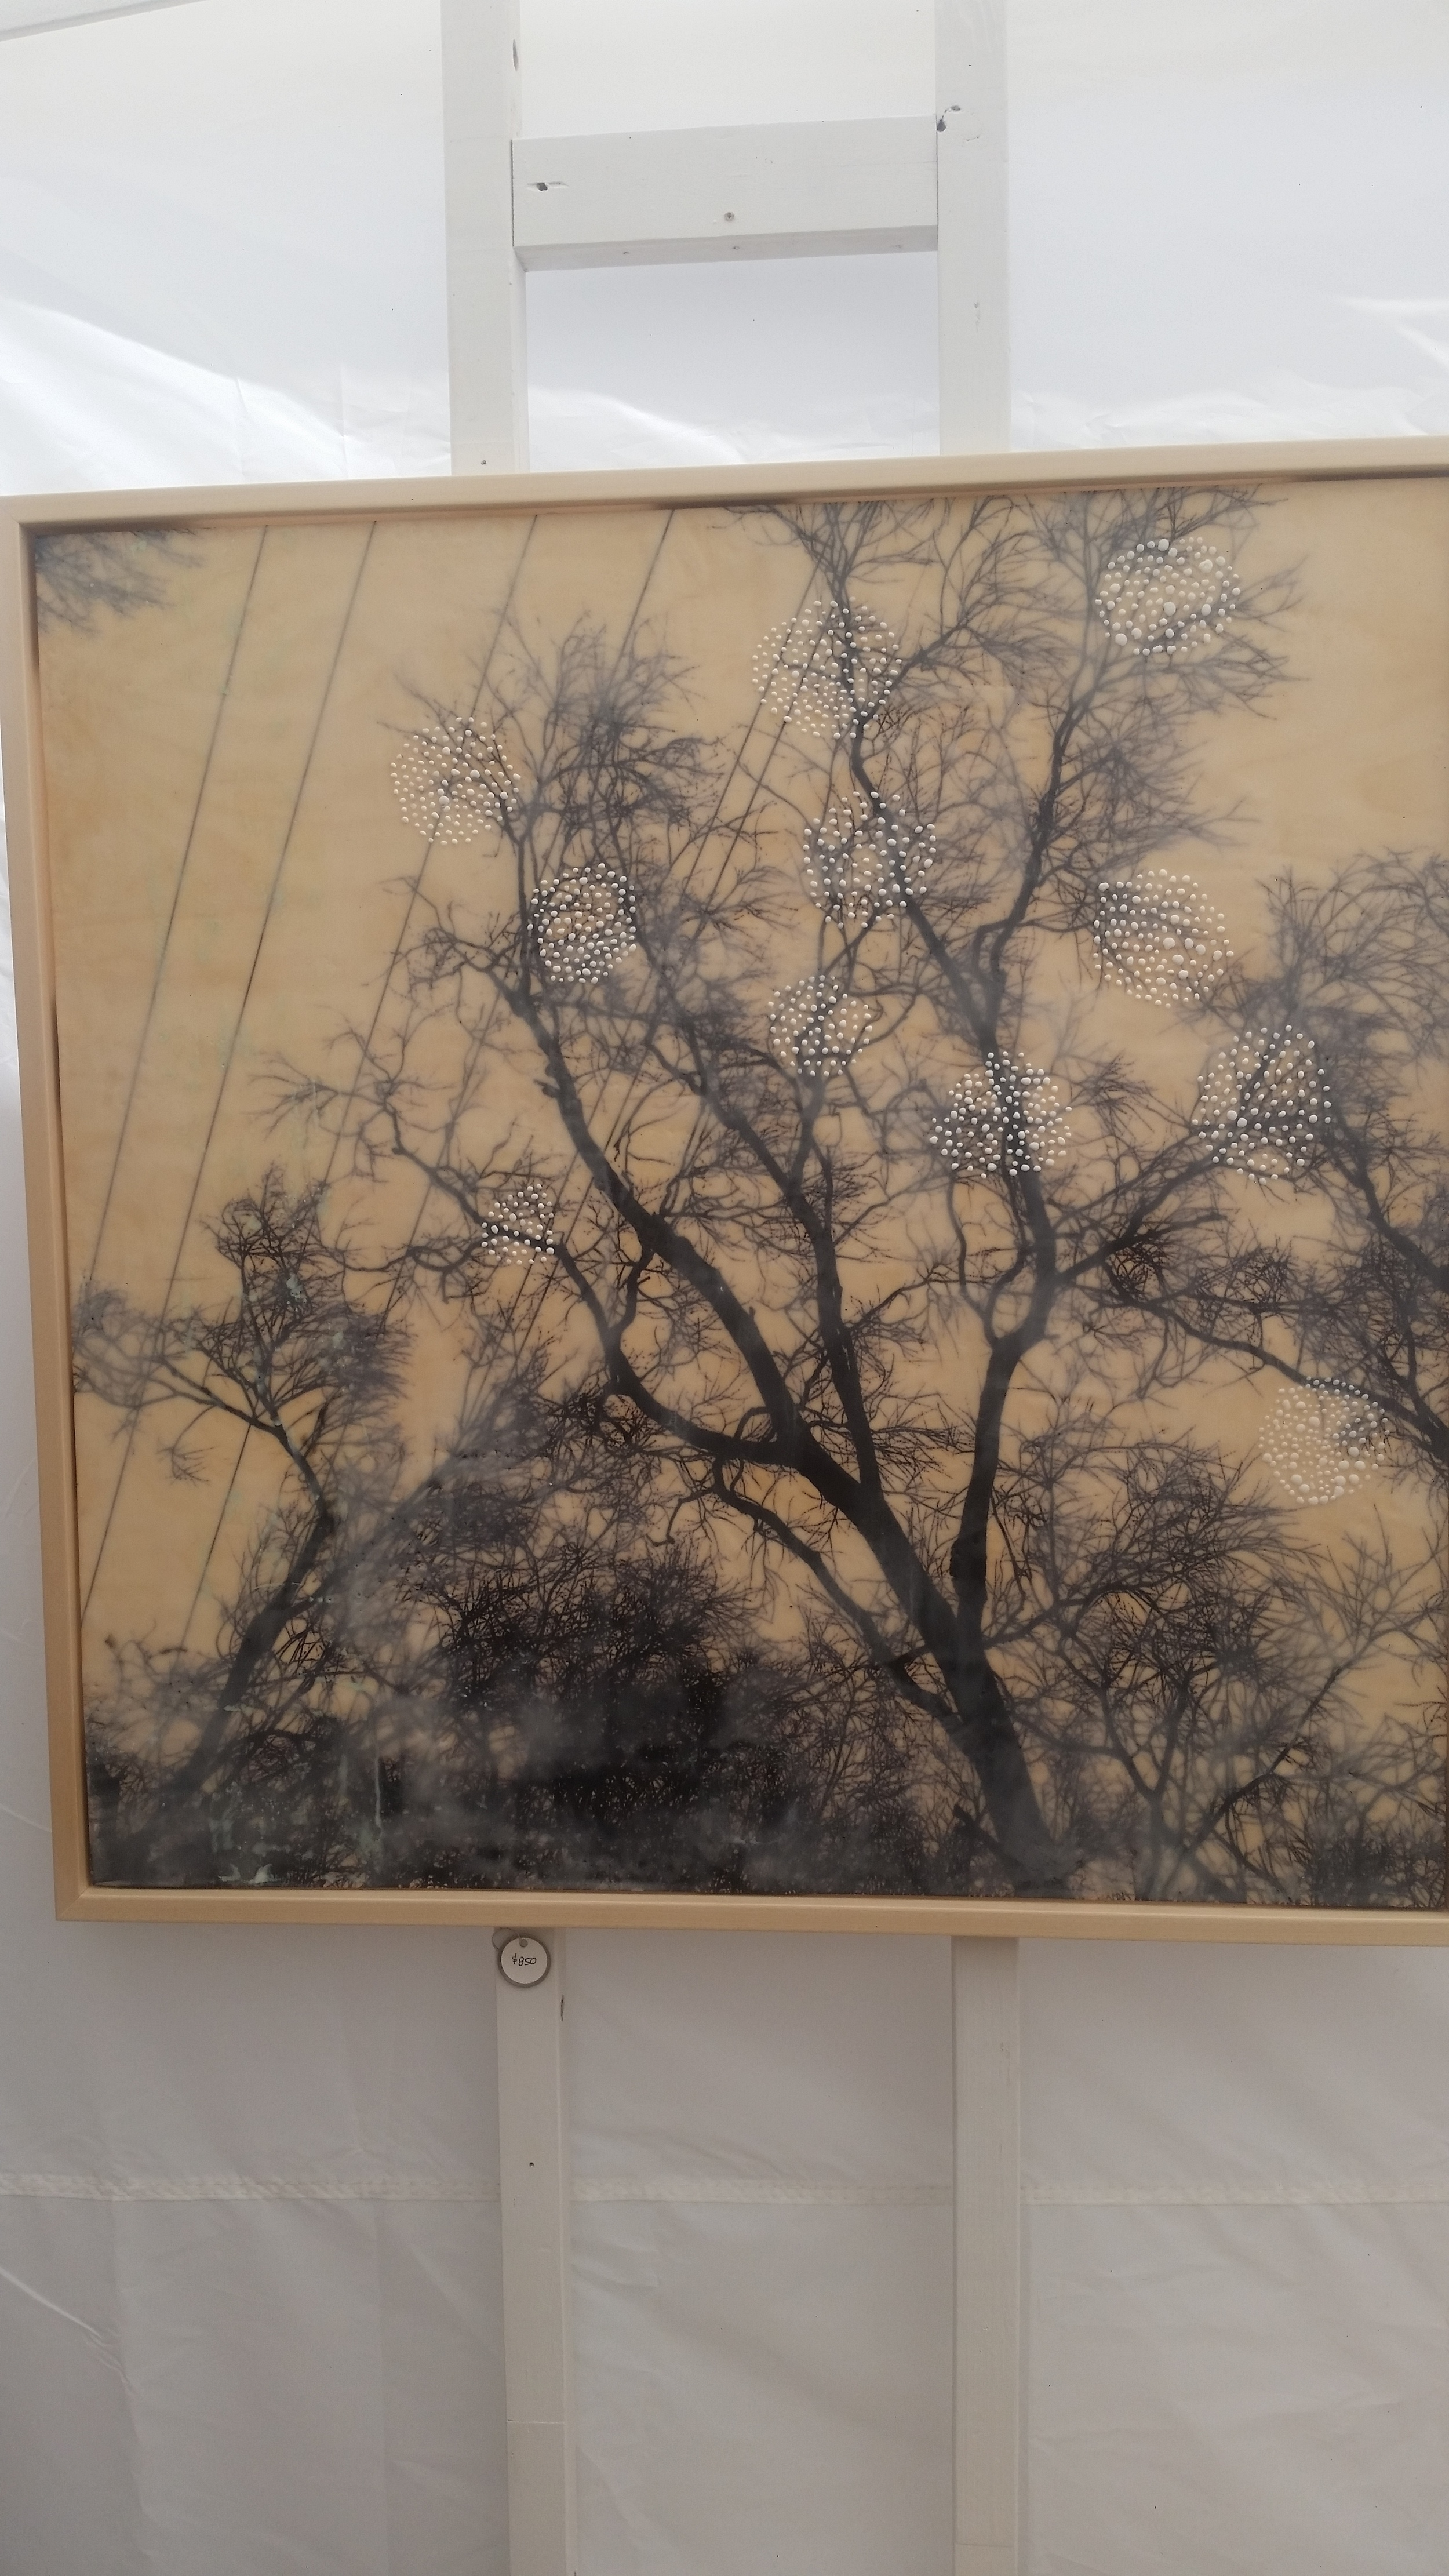 Artwork by Sandy Middleton Photography, encaustic mixed media